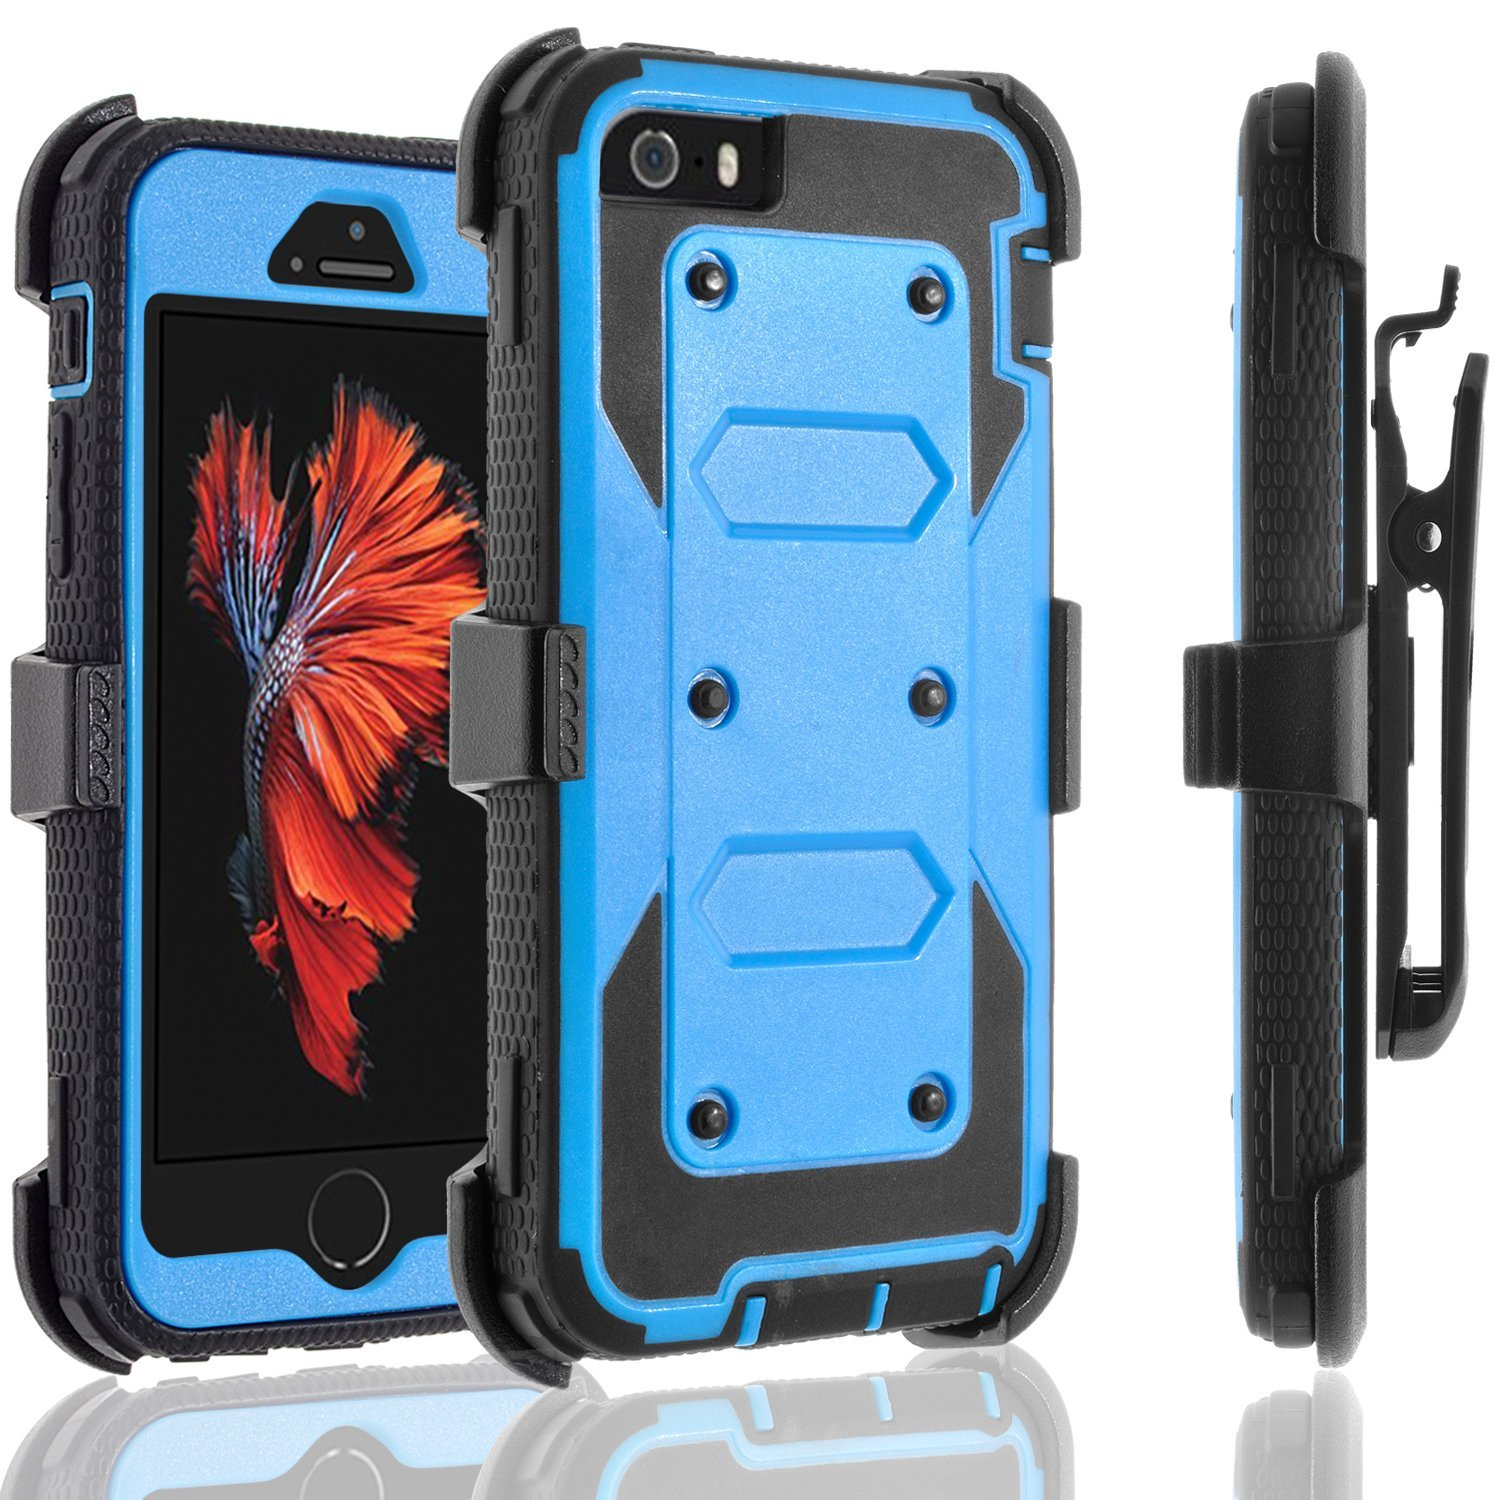 iPhone SE Case, iPhone 5 Case, iPhone 5S Case, [SUPER GUARD] Dual Layer Protection With [Built-in Screen Protector] Holster Locking Belt Clip+Circle(TM) Stylus Touch Screen Pen (Black)